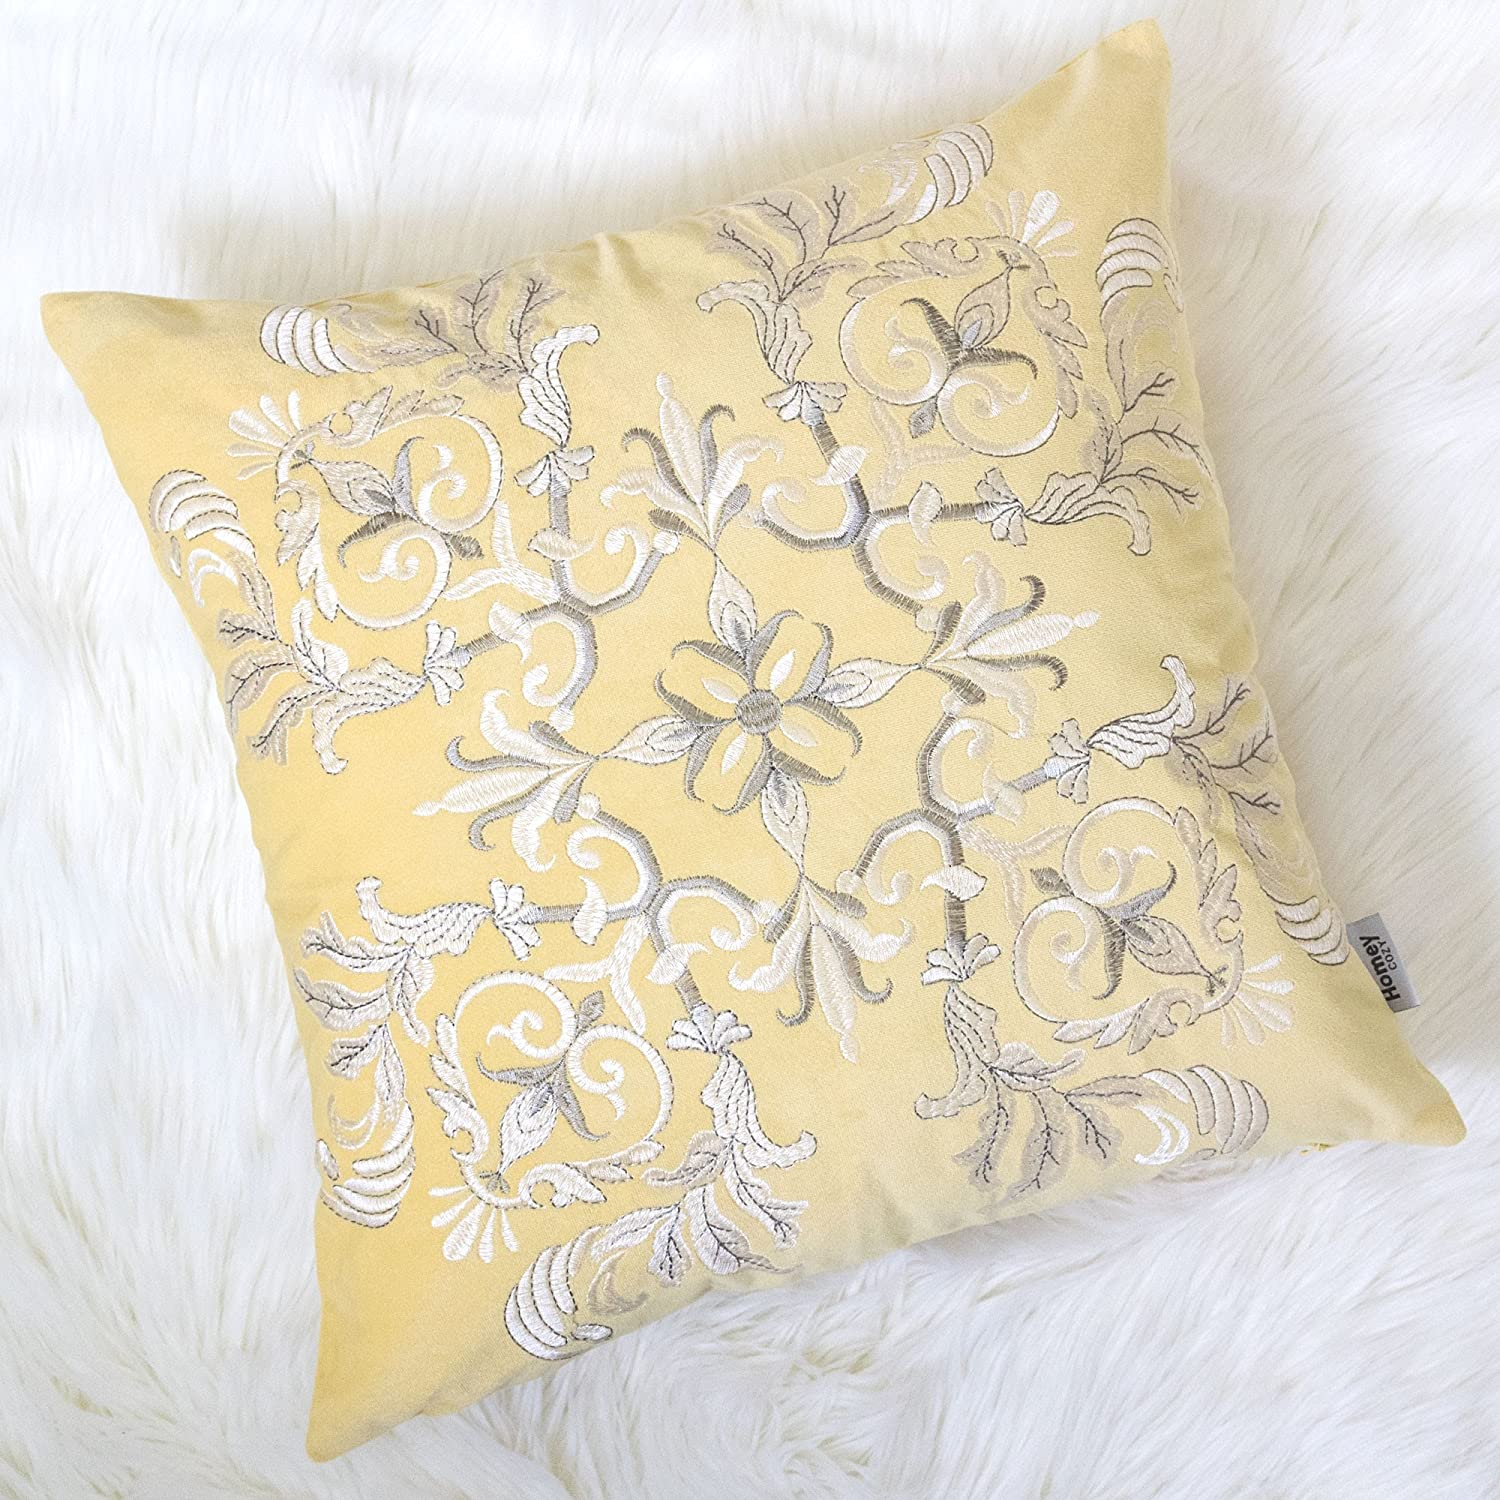 Homey Cozy Applique Yellow Velvet Throw Pillow Cover,Sunshine Series Geometric Knot Bright Spring Tropical Decorative Pillow Case Home Decor 20x20,Cover Only Kingray